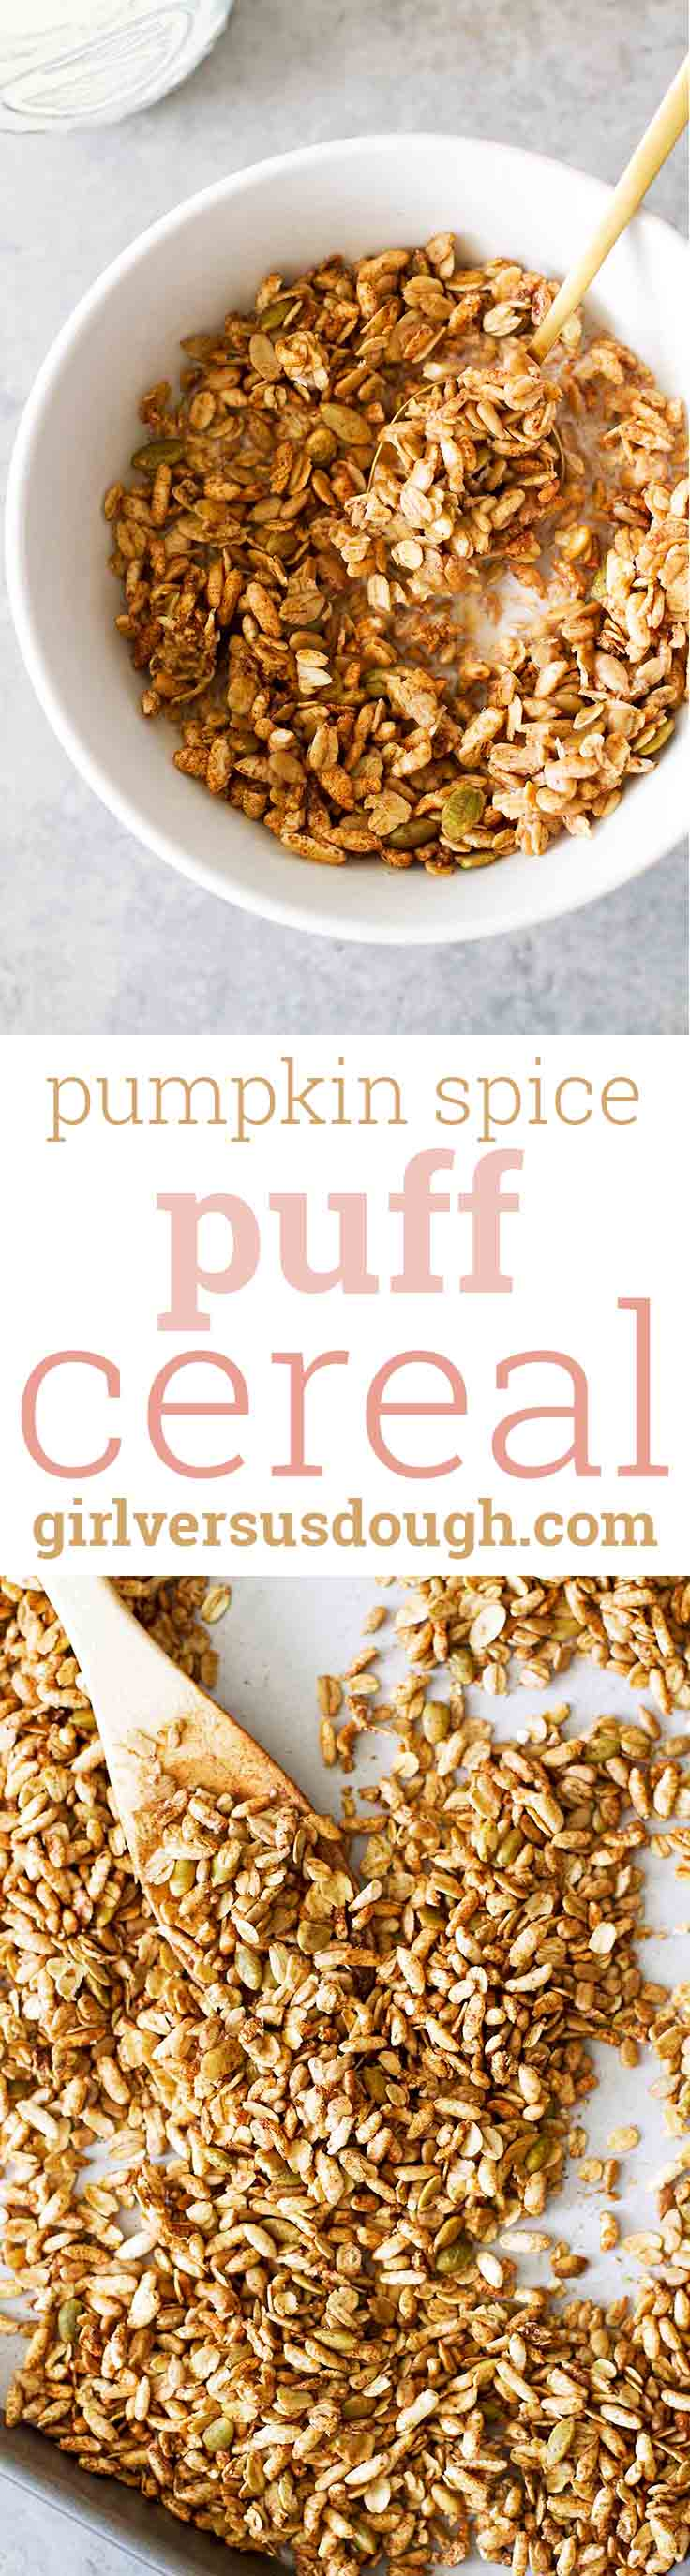 Pumpkin spice puff cereal girl versus dough pumpkin spice puff cereal puffed rice cereal hearty oats pumpkin seeds and ccuart Choice Image